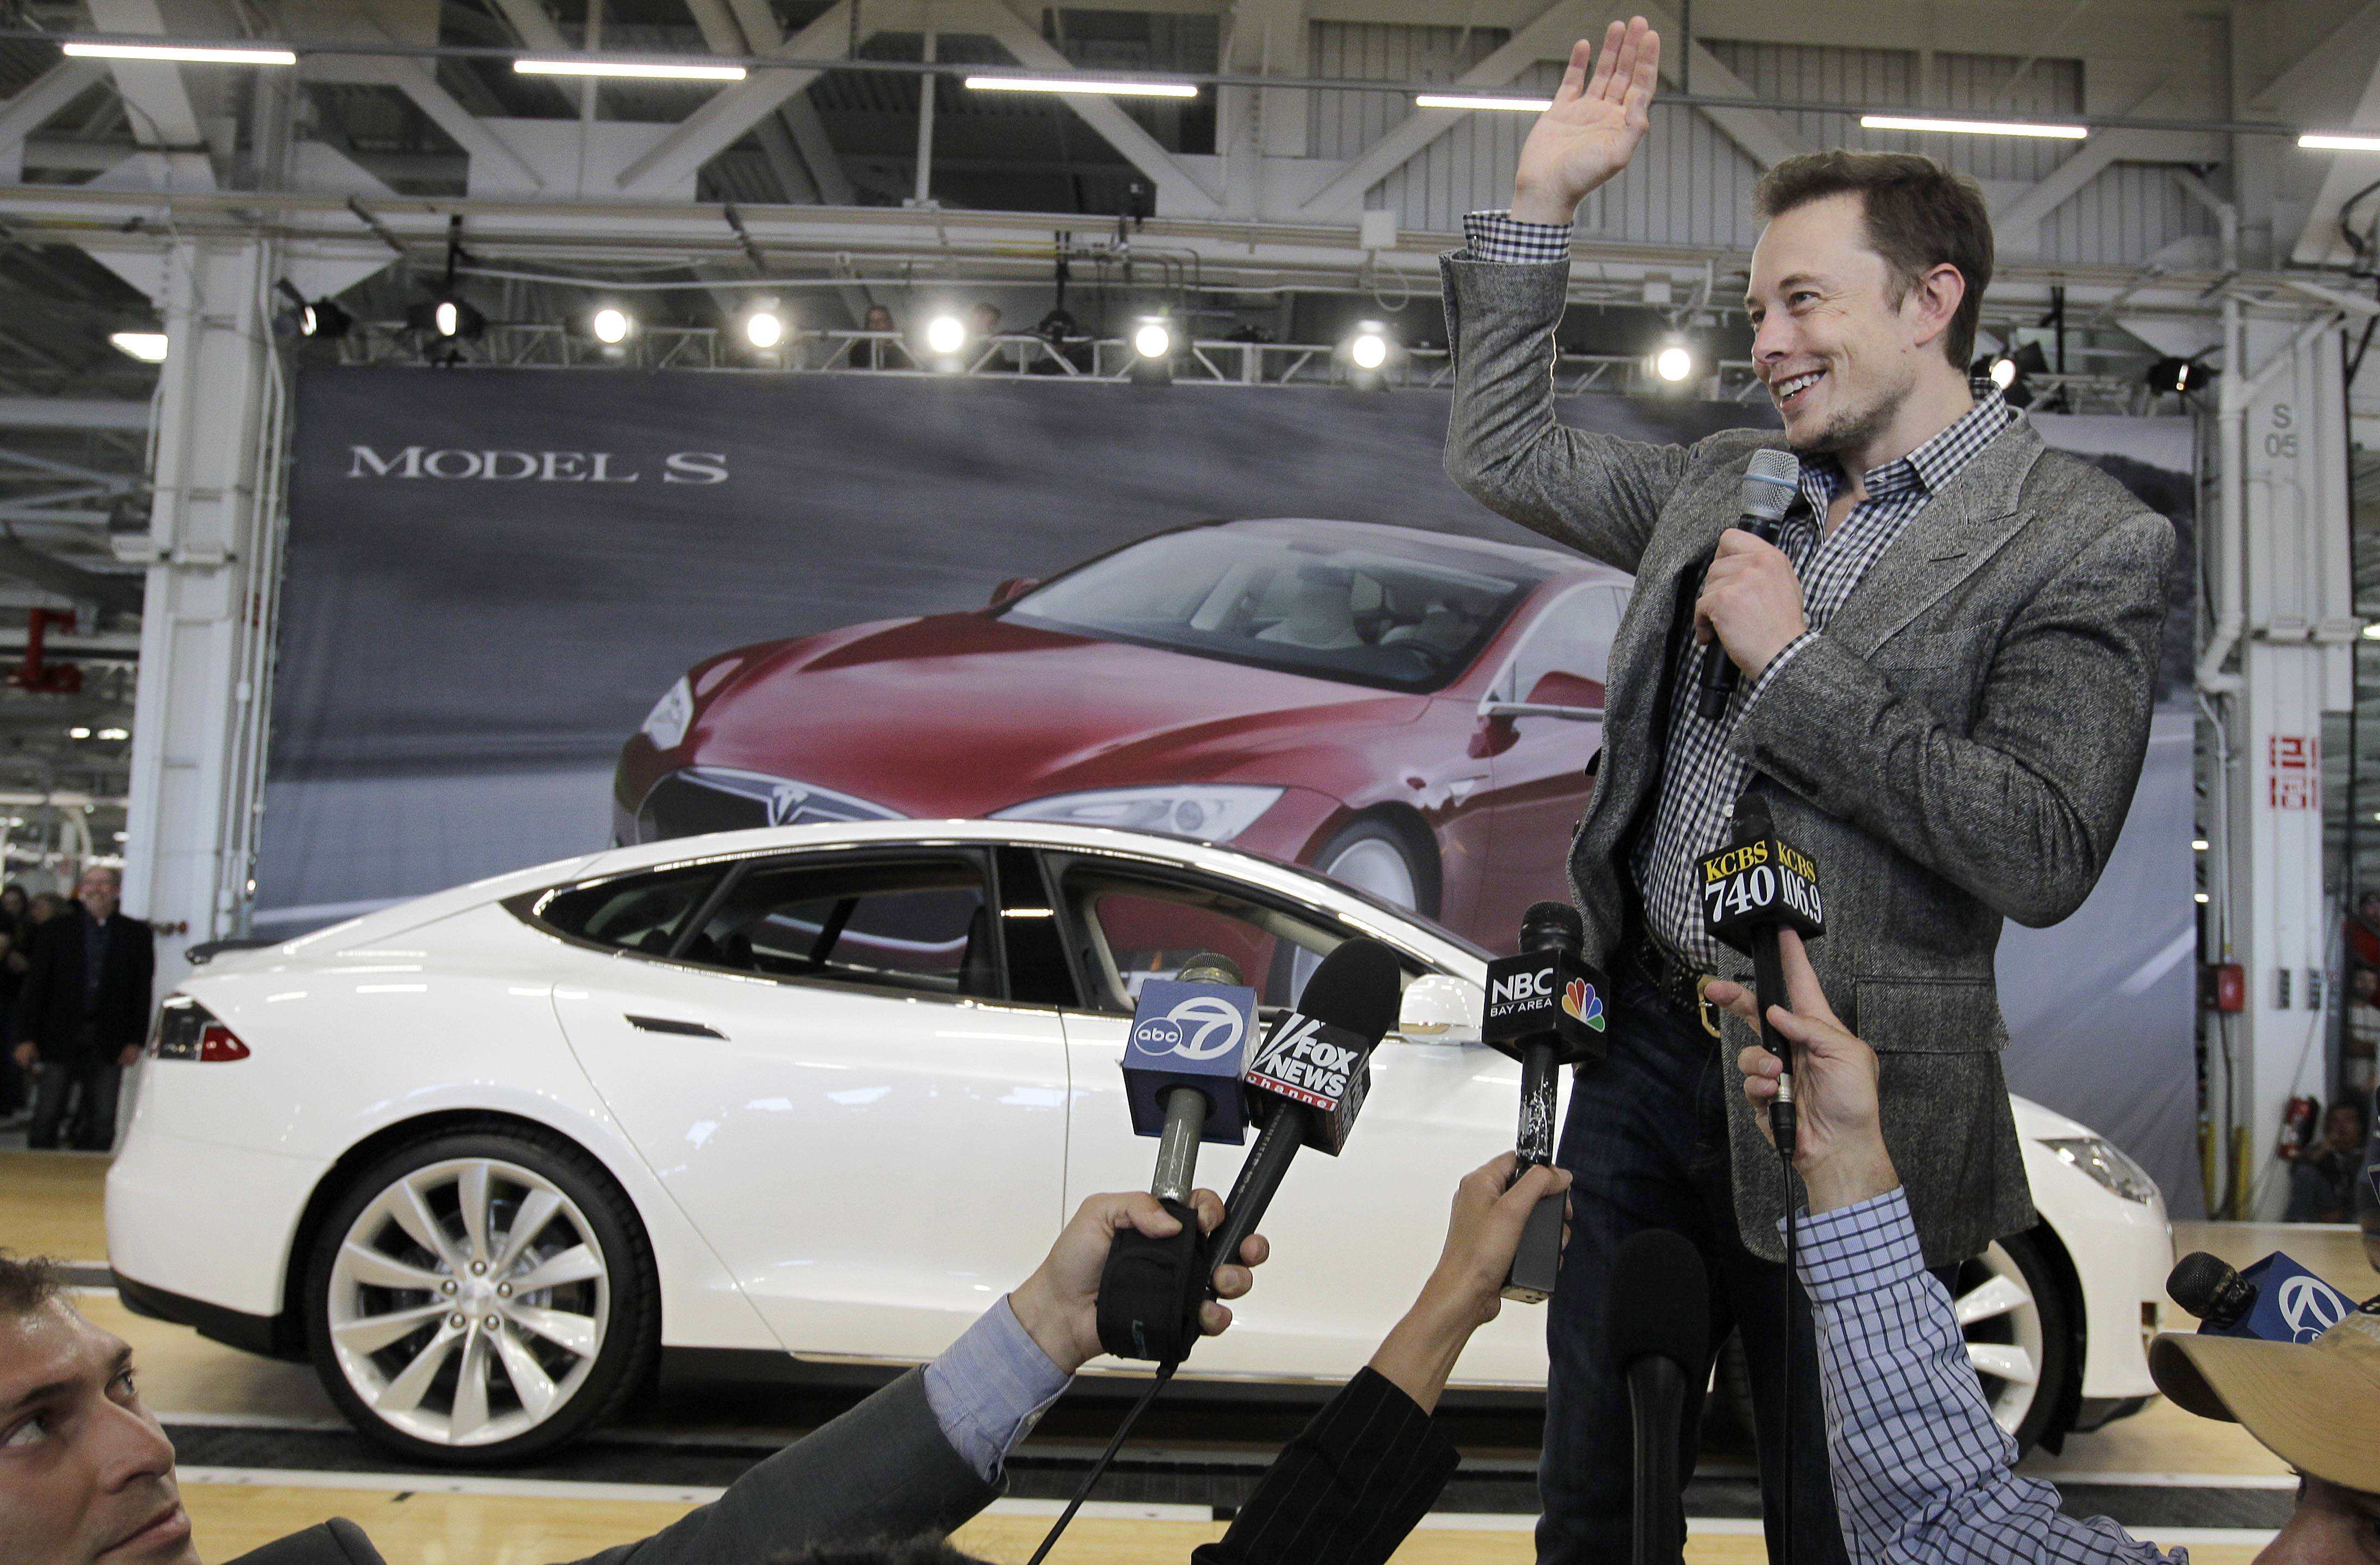 Tesla CEO Elon Musk, seen here in 2012, has five states bidding up subsidy packages to land a coveted plant for a $5 billion factory to make batteries for a new generation of Tesla electric cars.